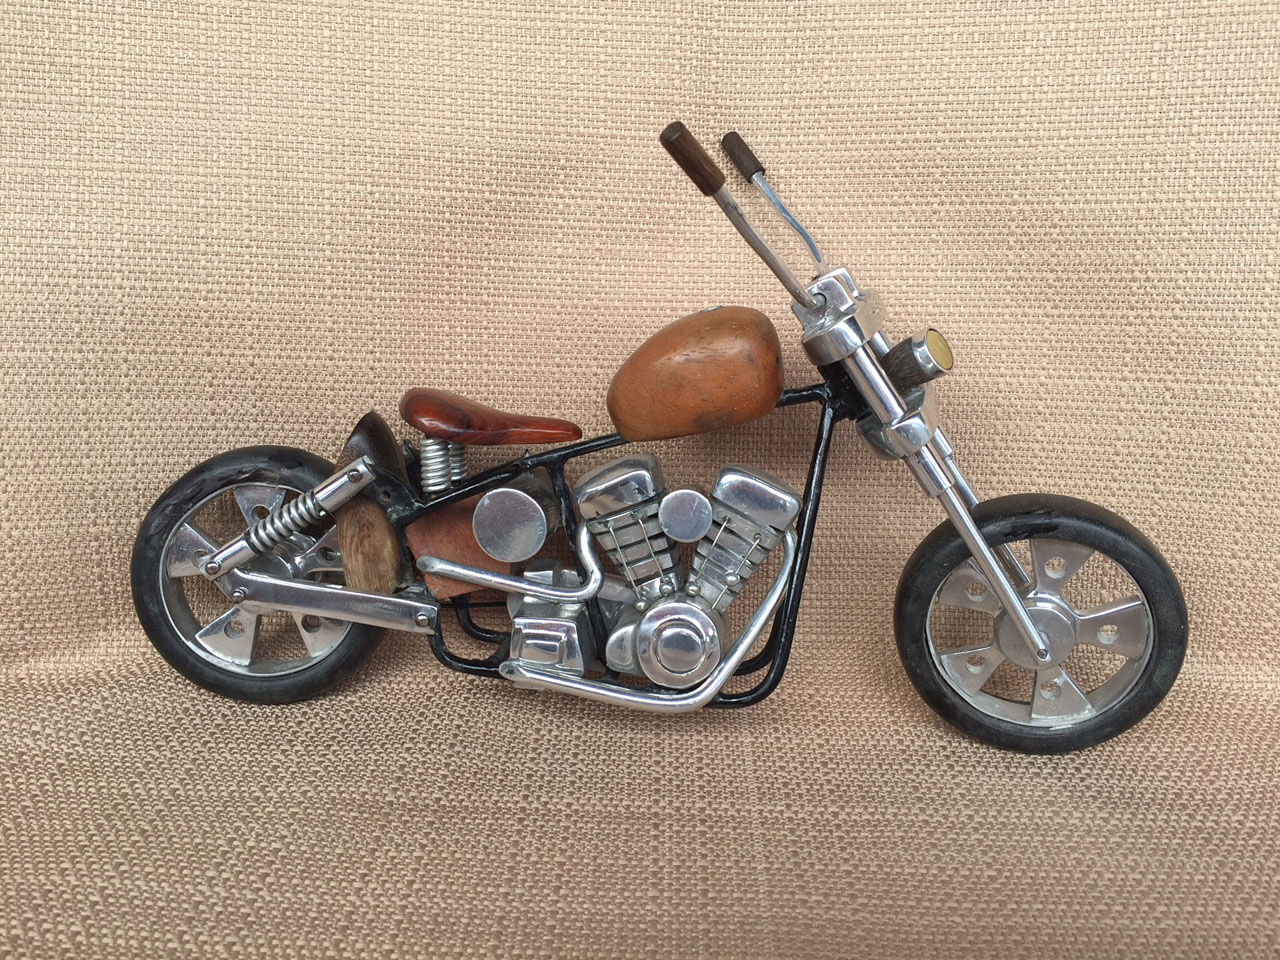 Chopper by Doug Miller wood and metal model